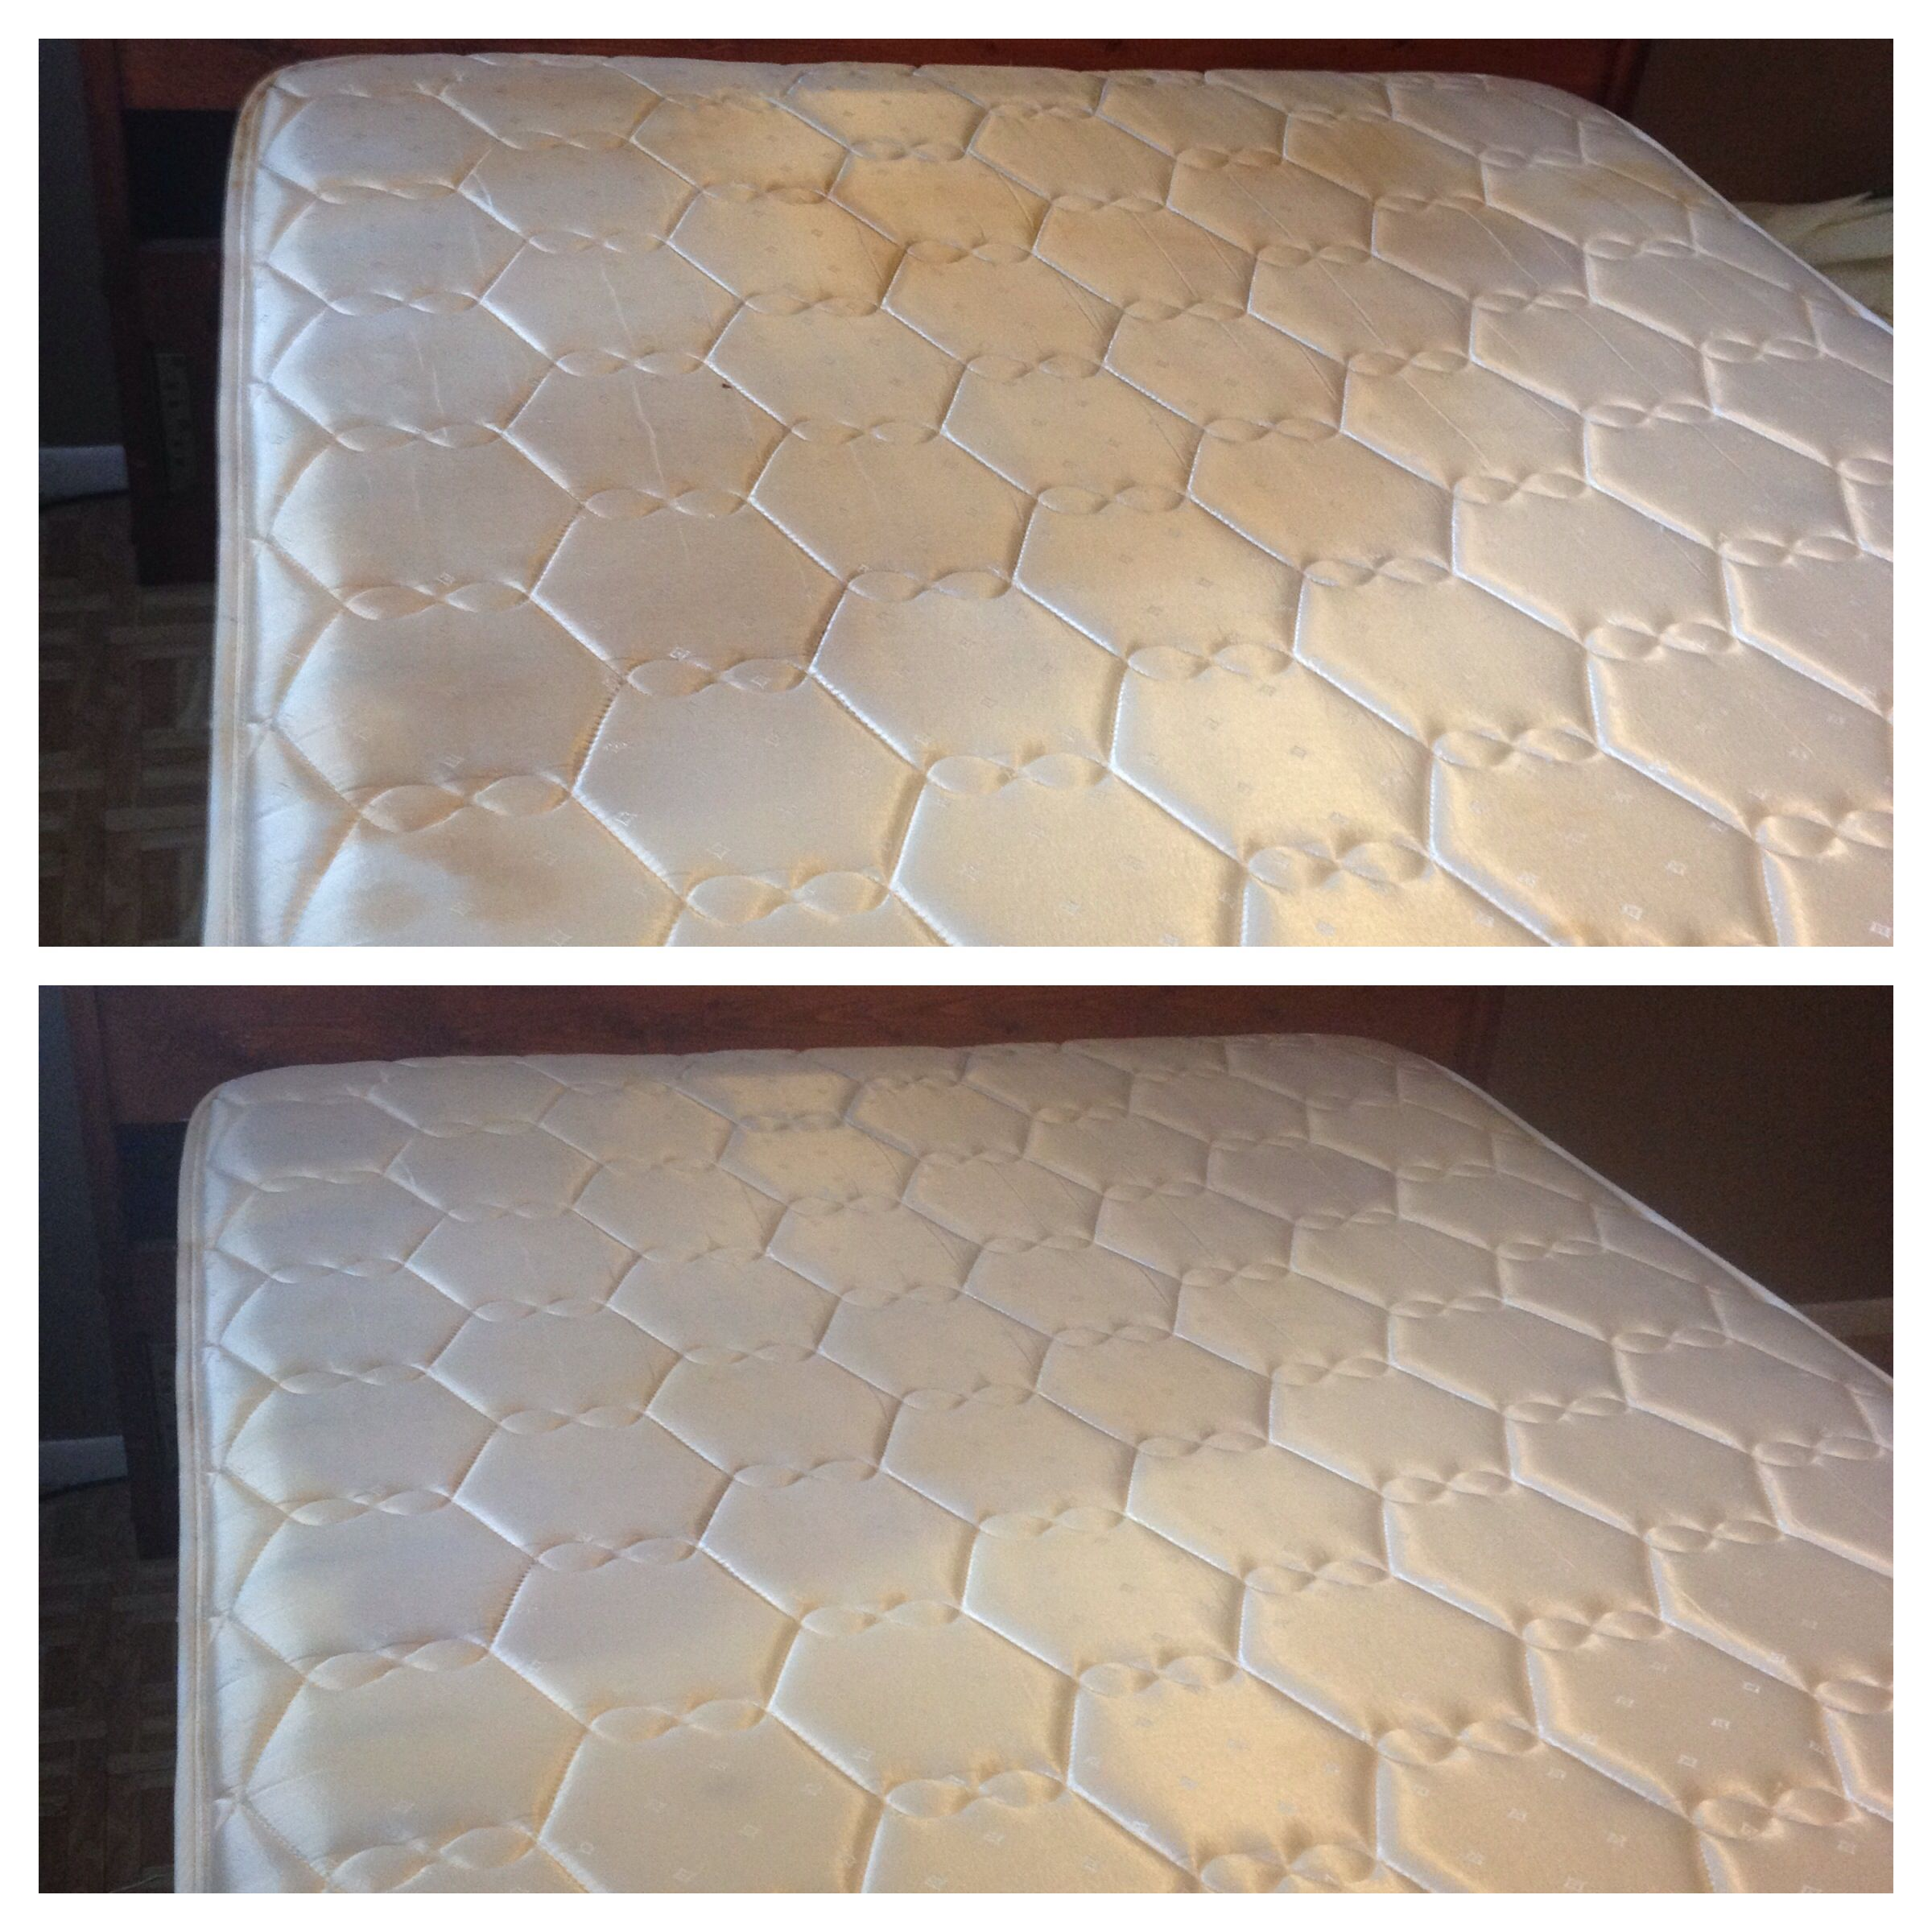 mattress stain remover it really works 8 oz hydrogen peroxide 3 tbs baking soda 2 drops of. Black Bedroom Furniture Sets. Home Design Ideas